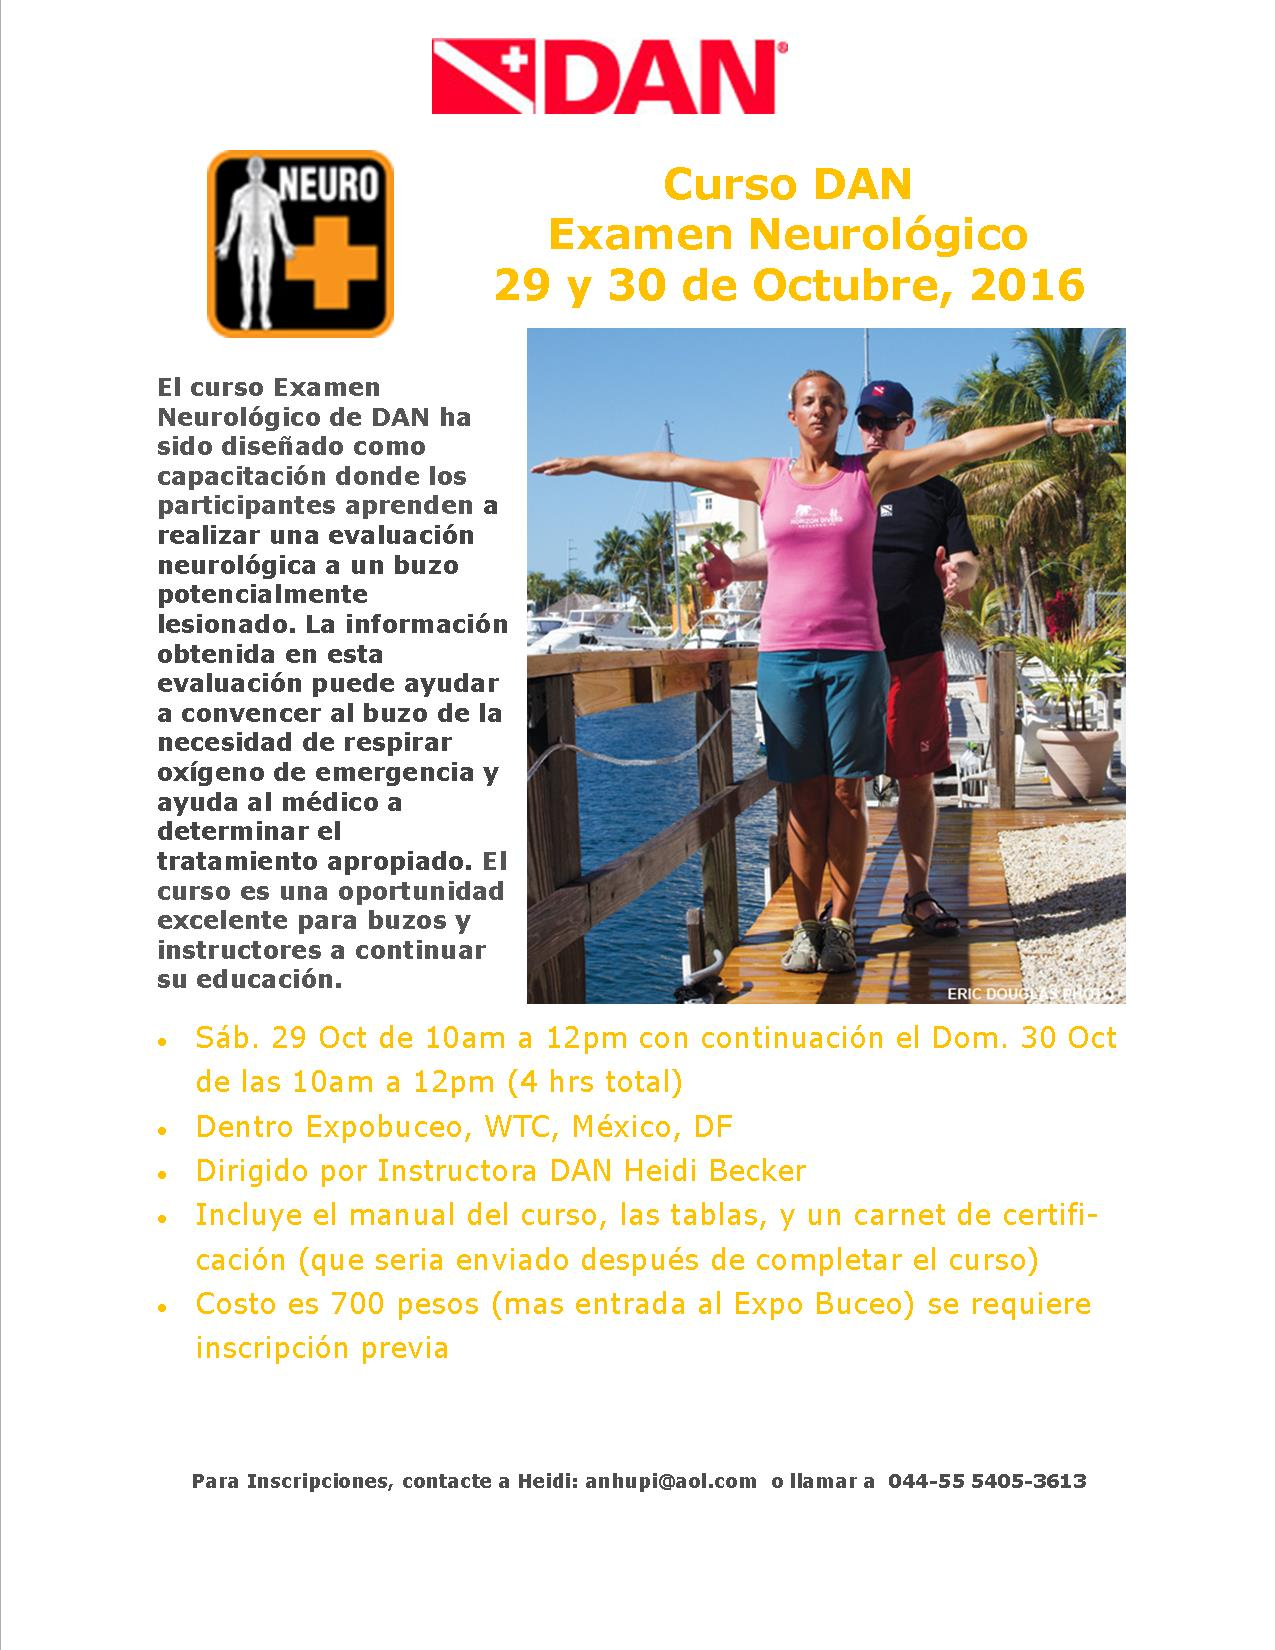 Expo Buceo Neuro Exam Course Promo 2016